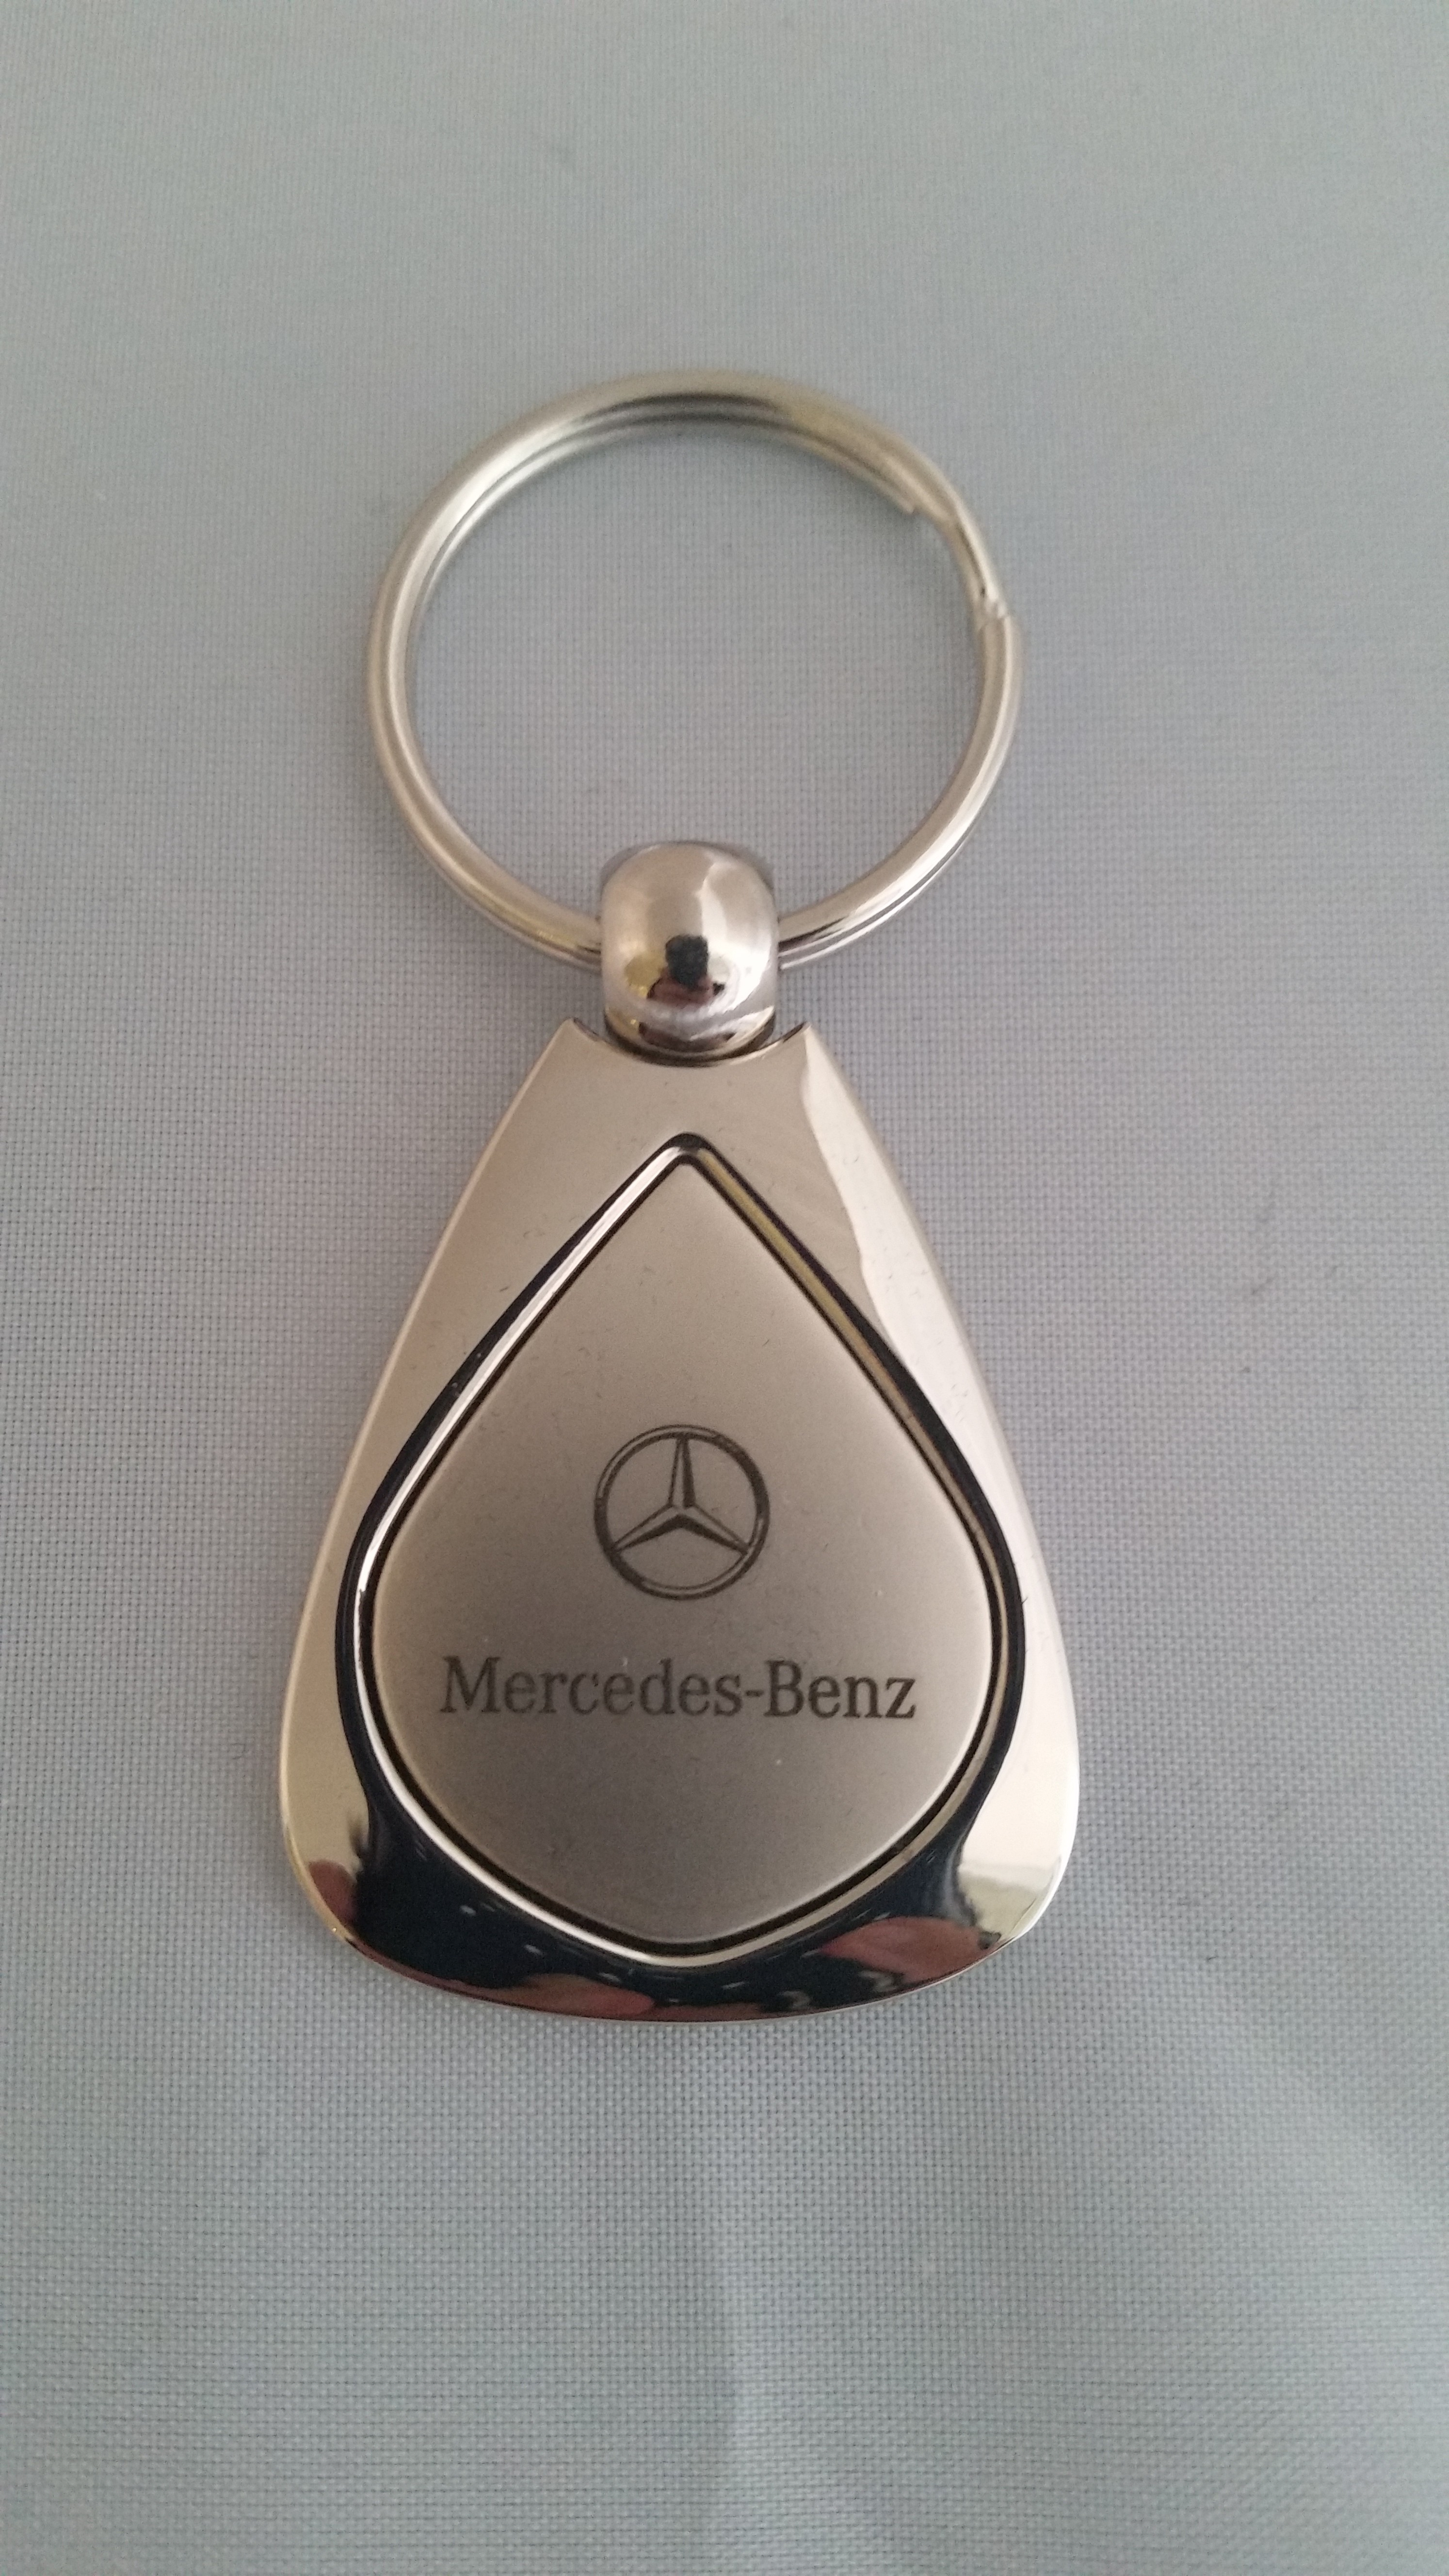 The parts depot for Mercedes benz keychain